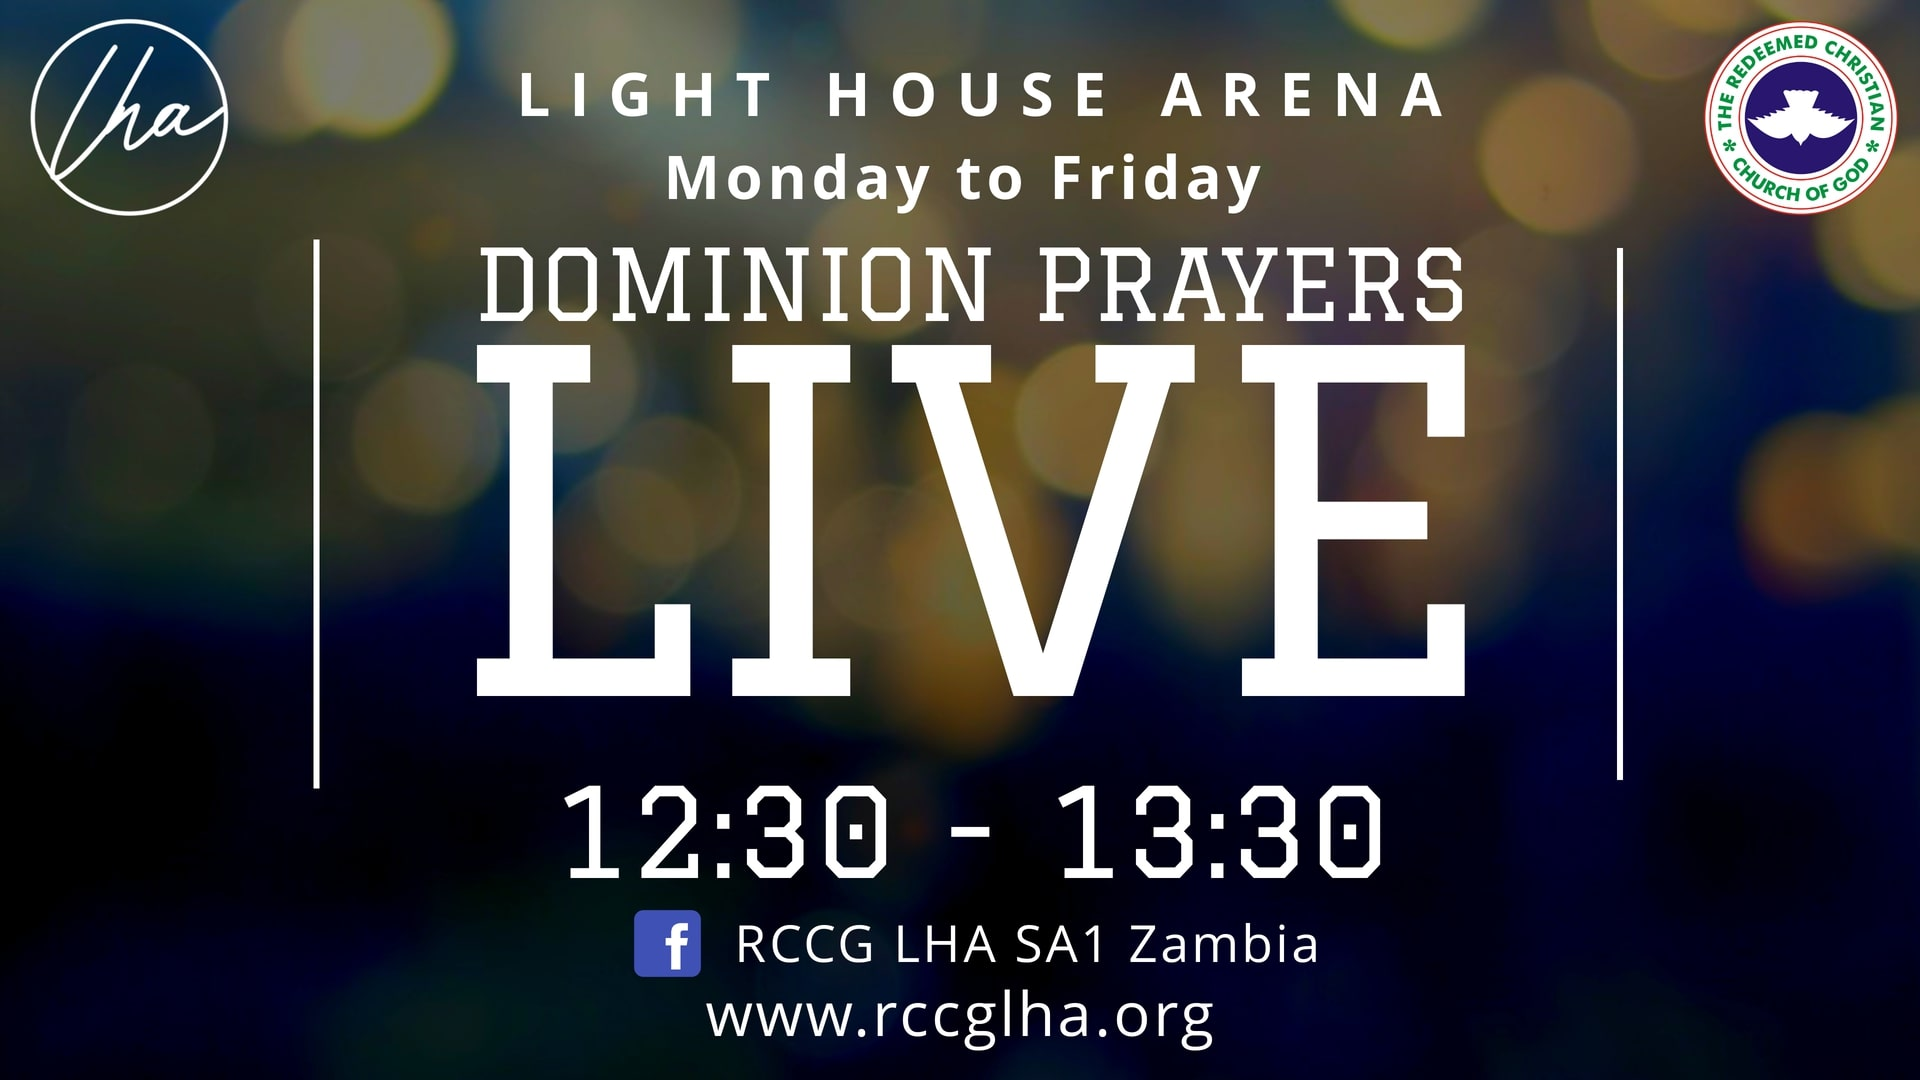 Dominion Prayers